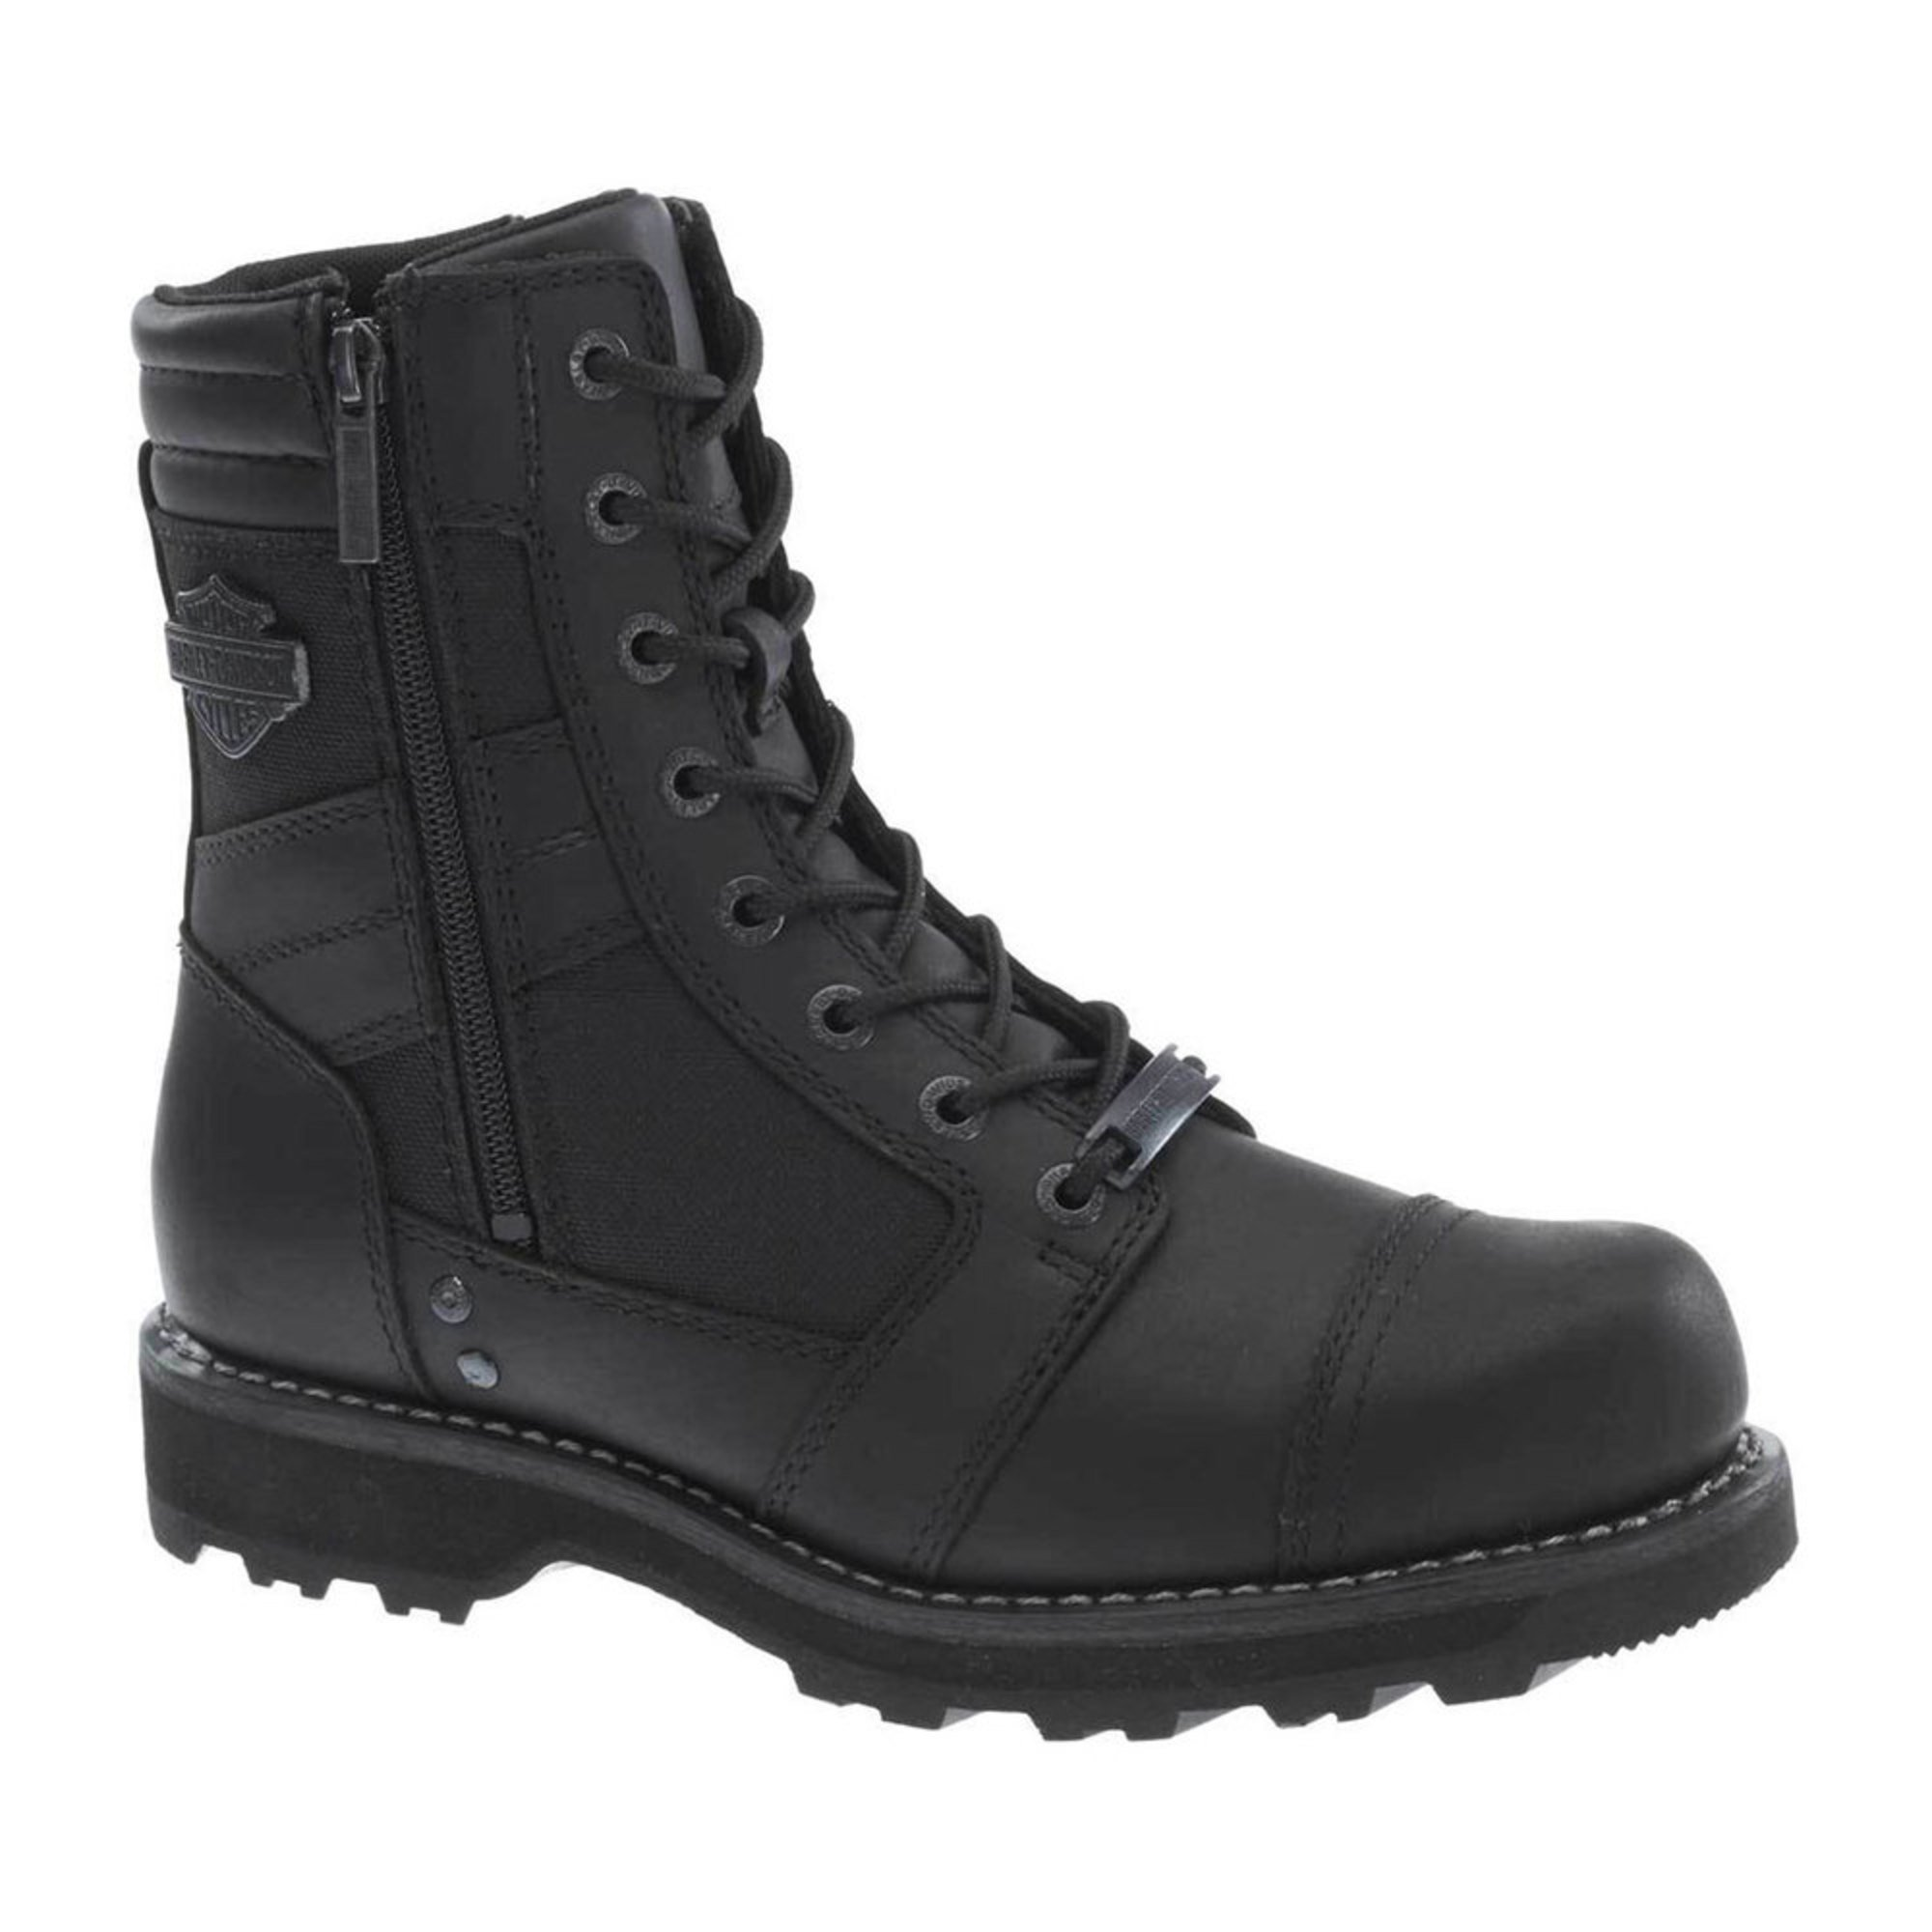 Fantastic  In Harley Davidson Women S Boots Next In Harley Davidson Women S Boots